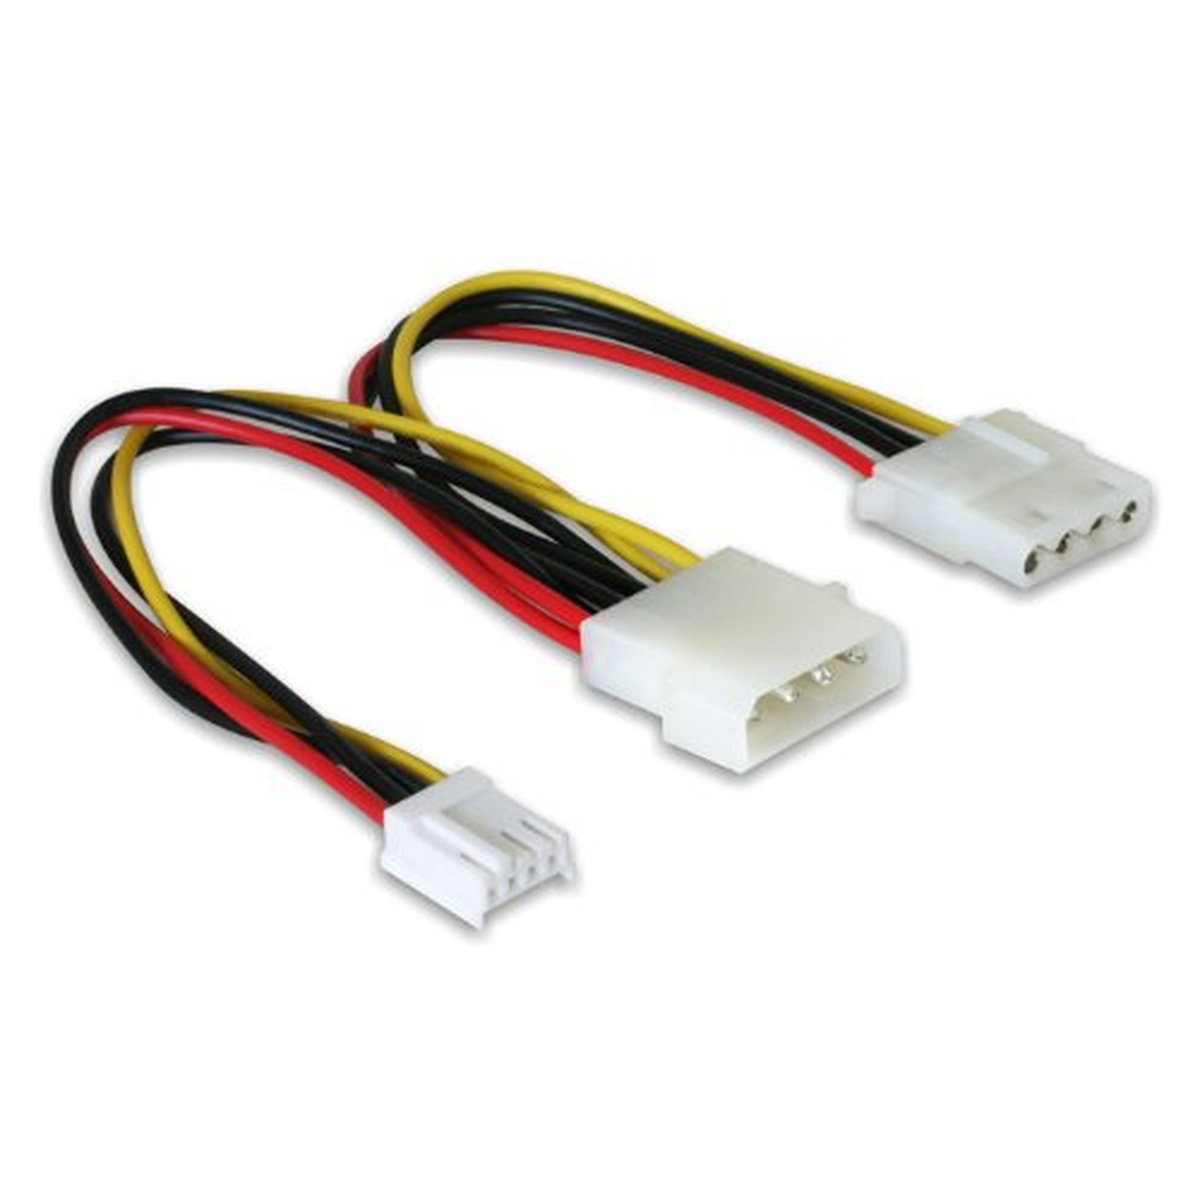 DeLOCK Y-Kabel Power Molex 4pin Stecker > Molex 4pin Buchse